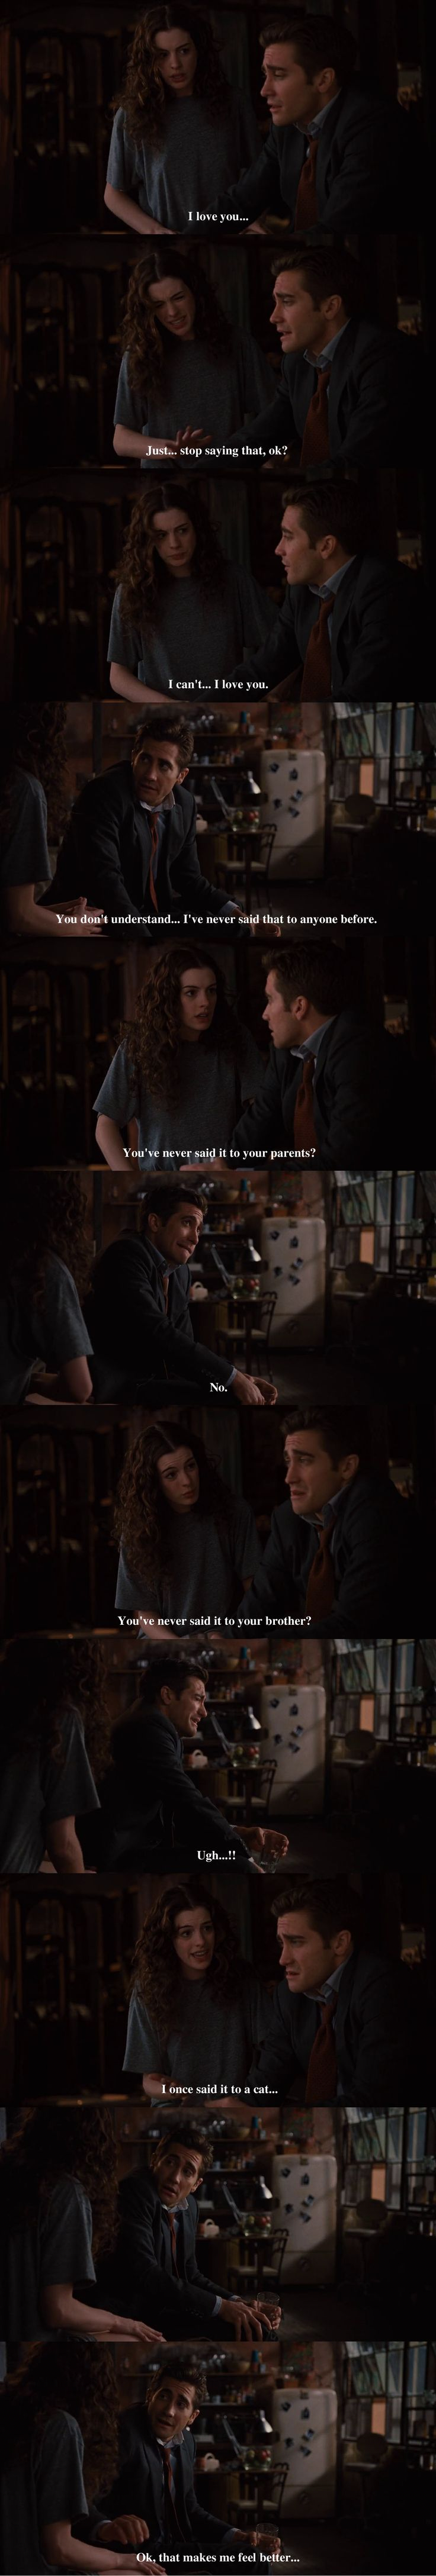 """I've never said I love you"", Anne Hathaway & Jake Gyllenhaal. Love and Other Drugs, 2010, Edward Zwick."